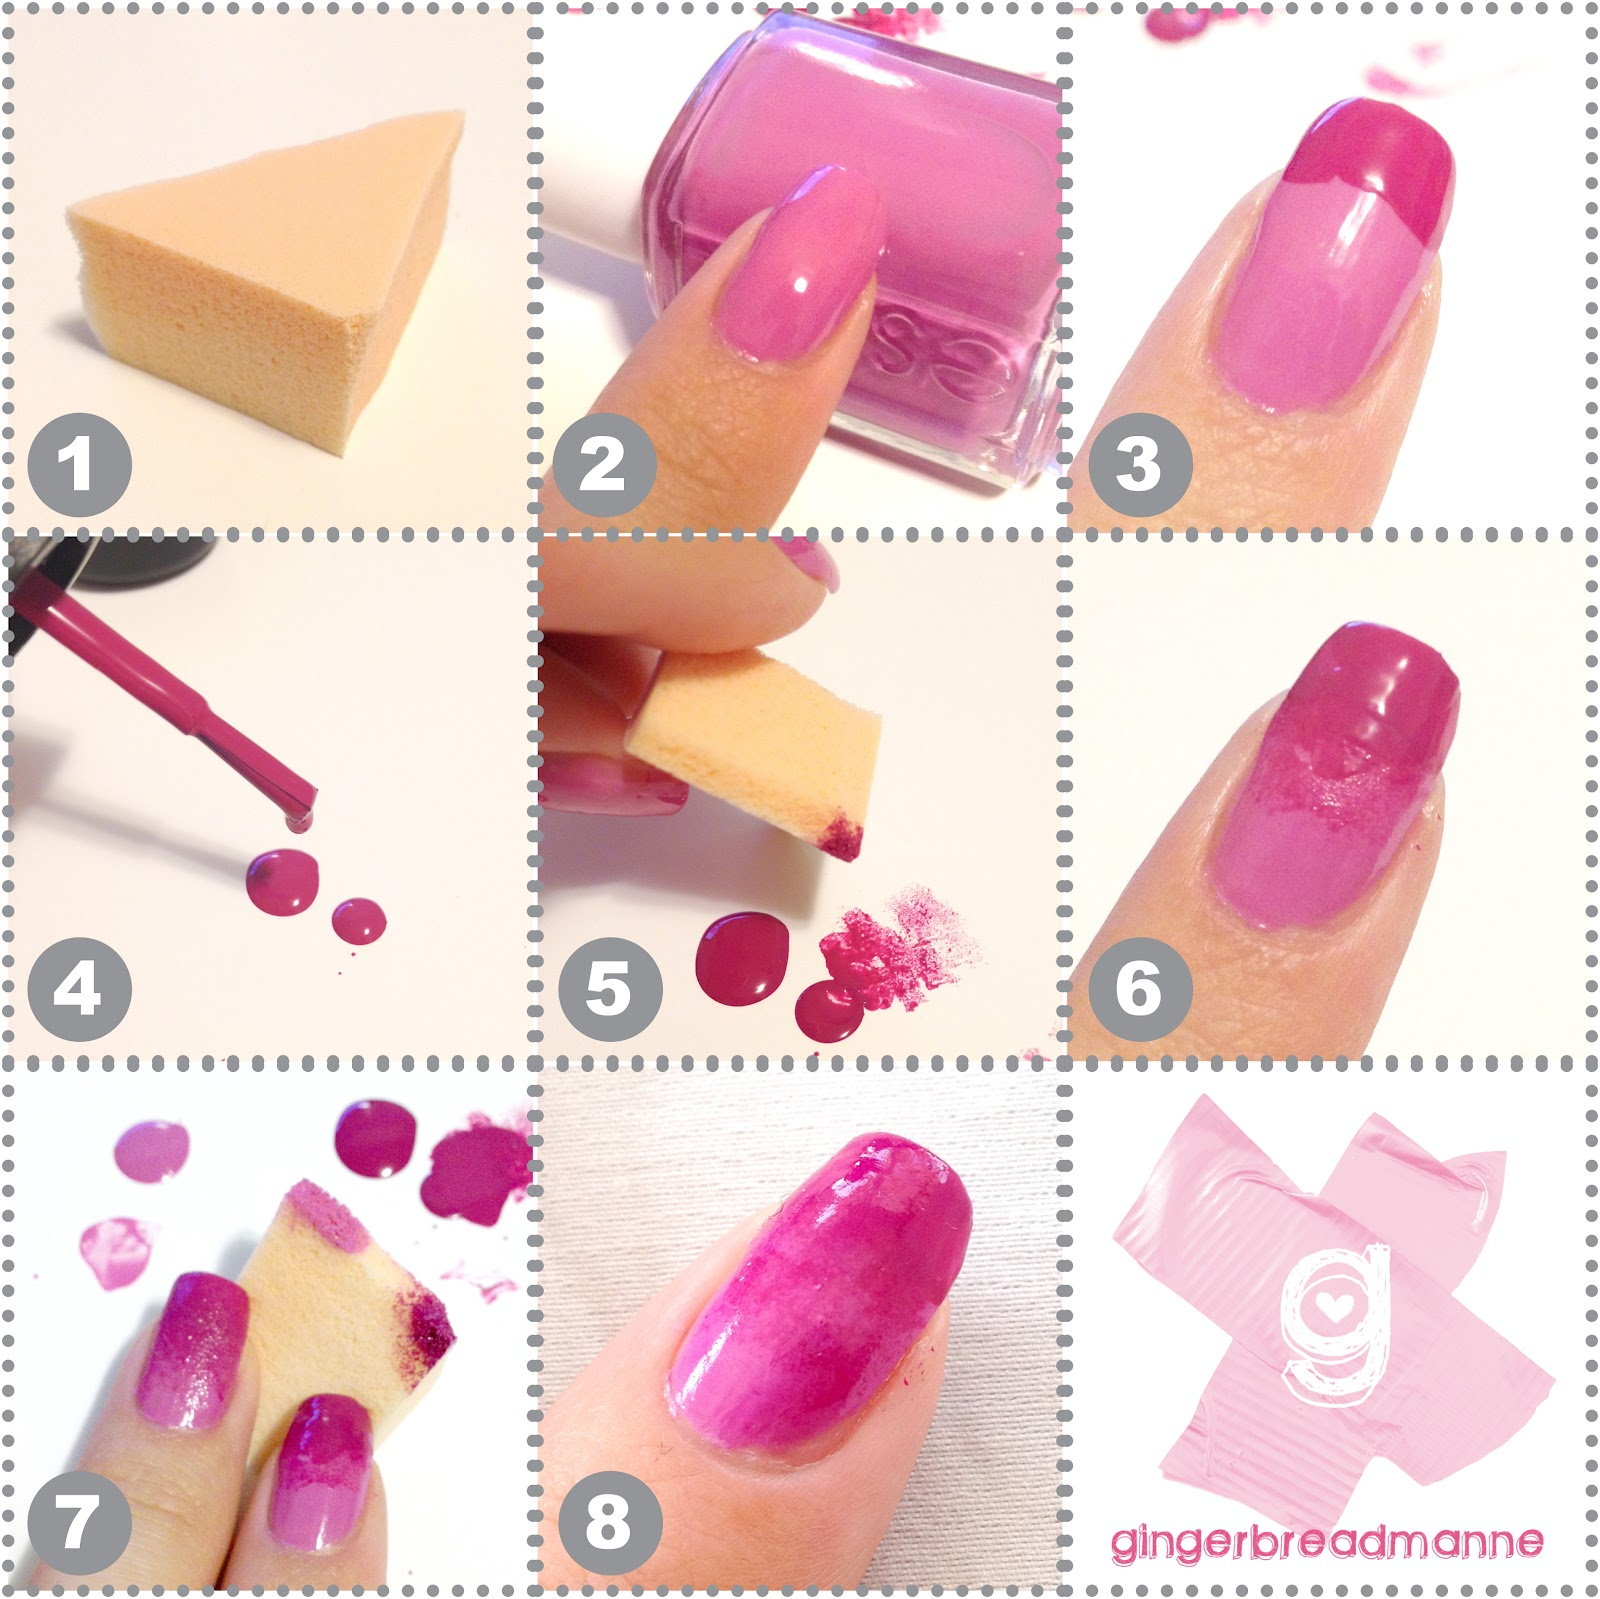 How to Do Ombre Nails Without Sponge Step by Step